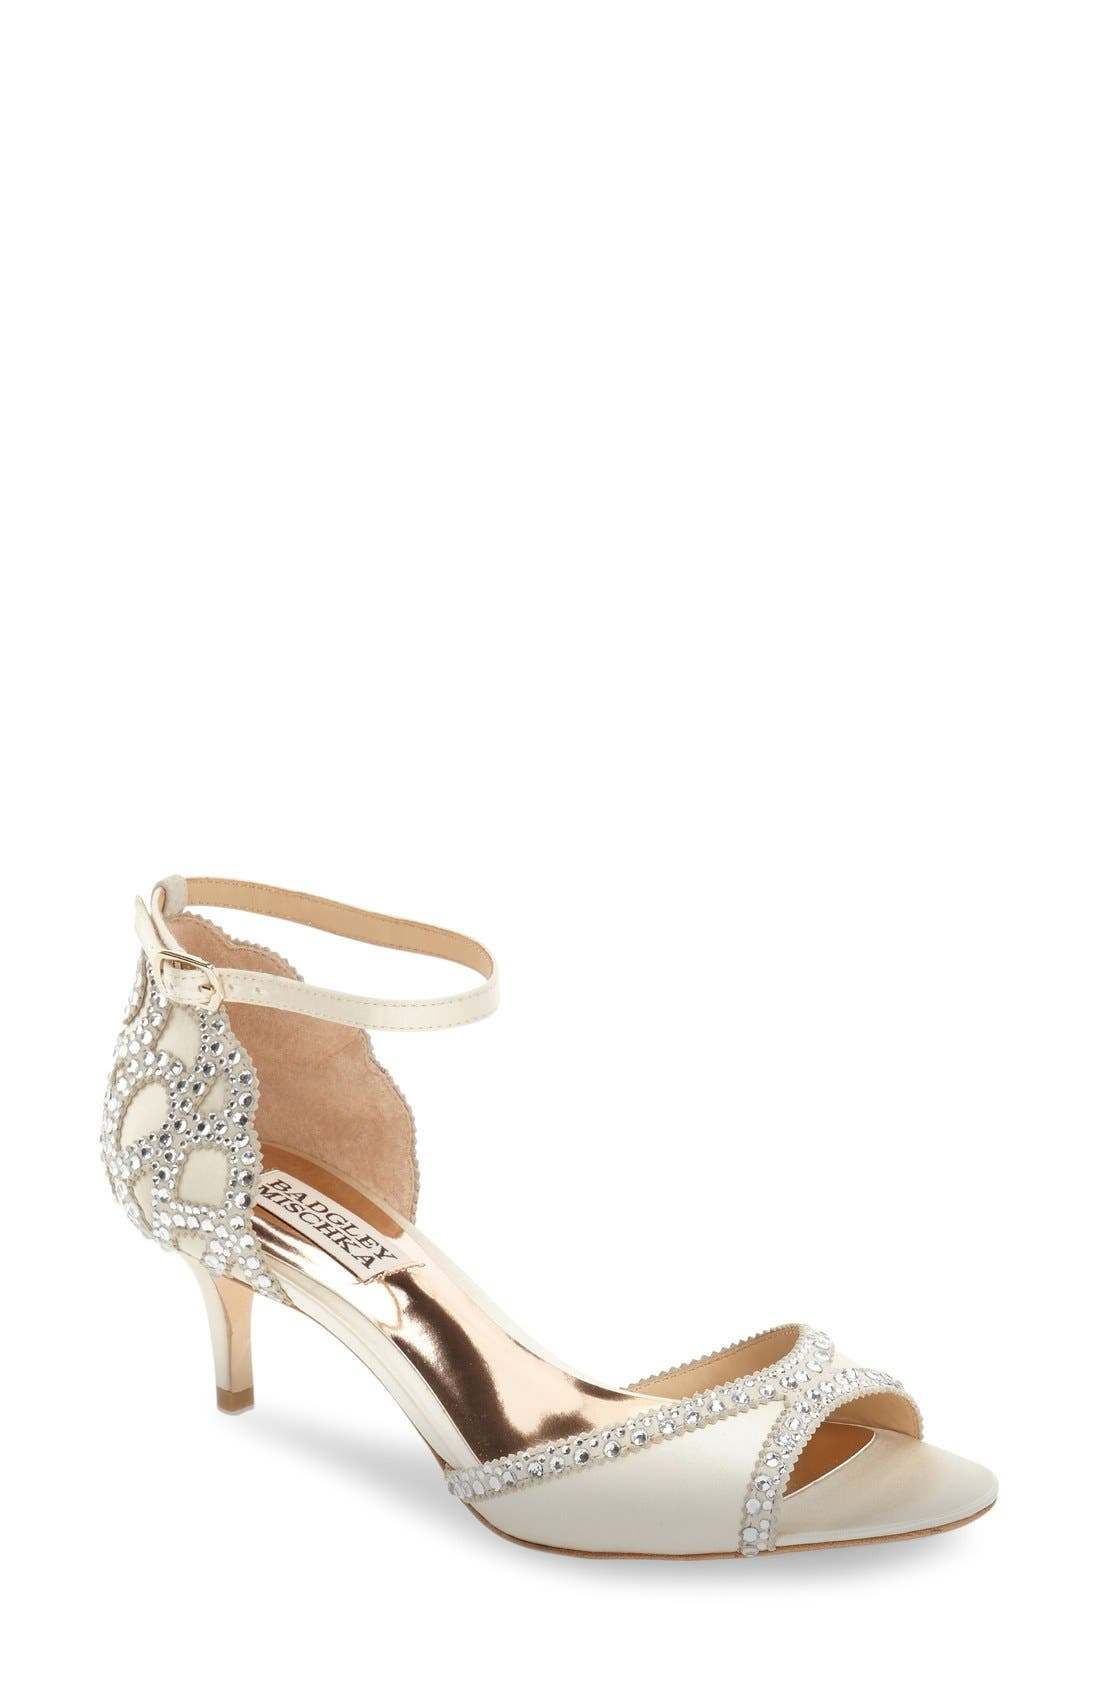 989c33cb44f Badgley Mischka Shoes